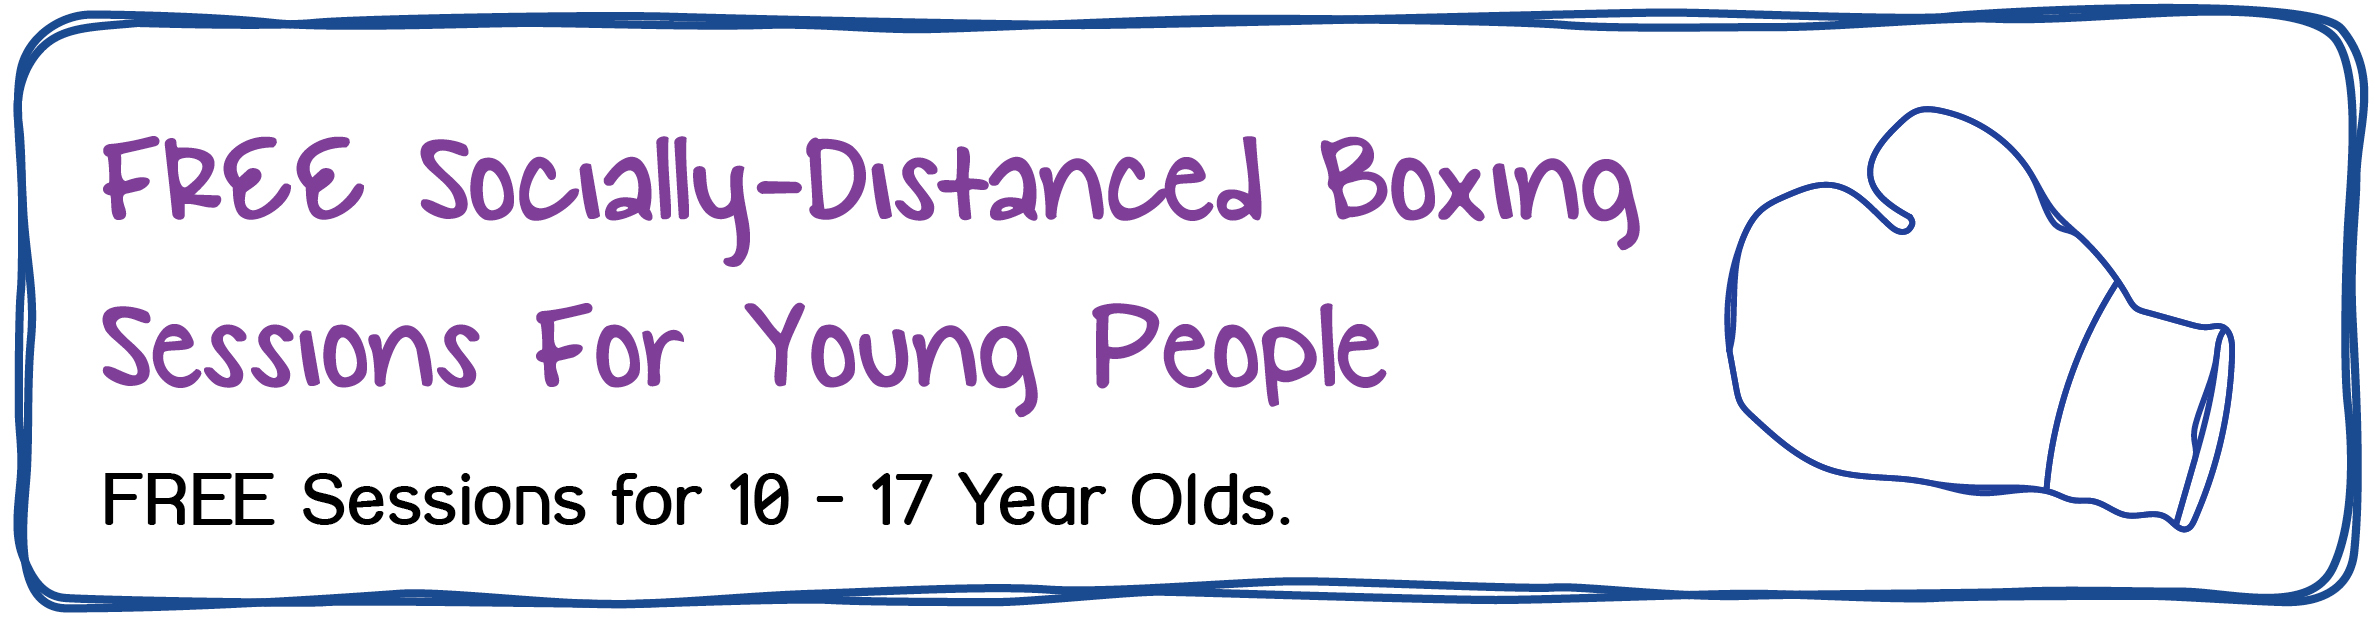 FREE Socially-Distanced Boxing Sessions for Young People. FREE Sessions for 10-17 yrs old.